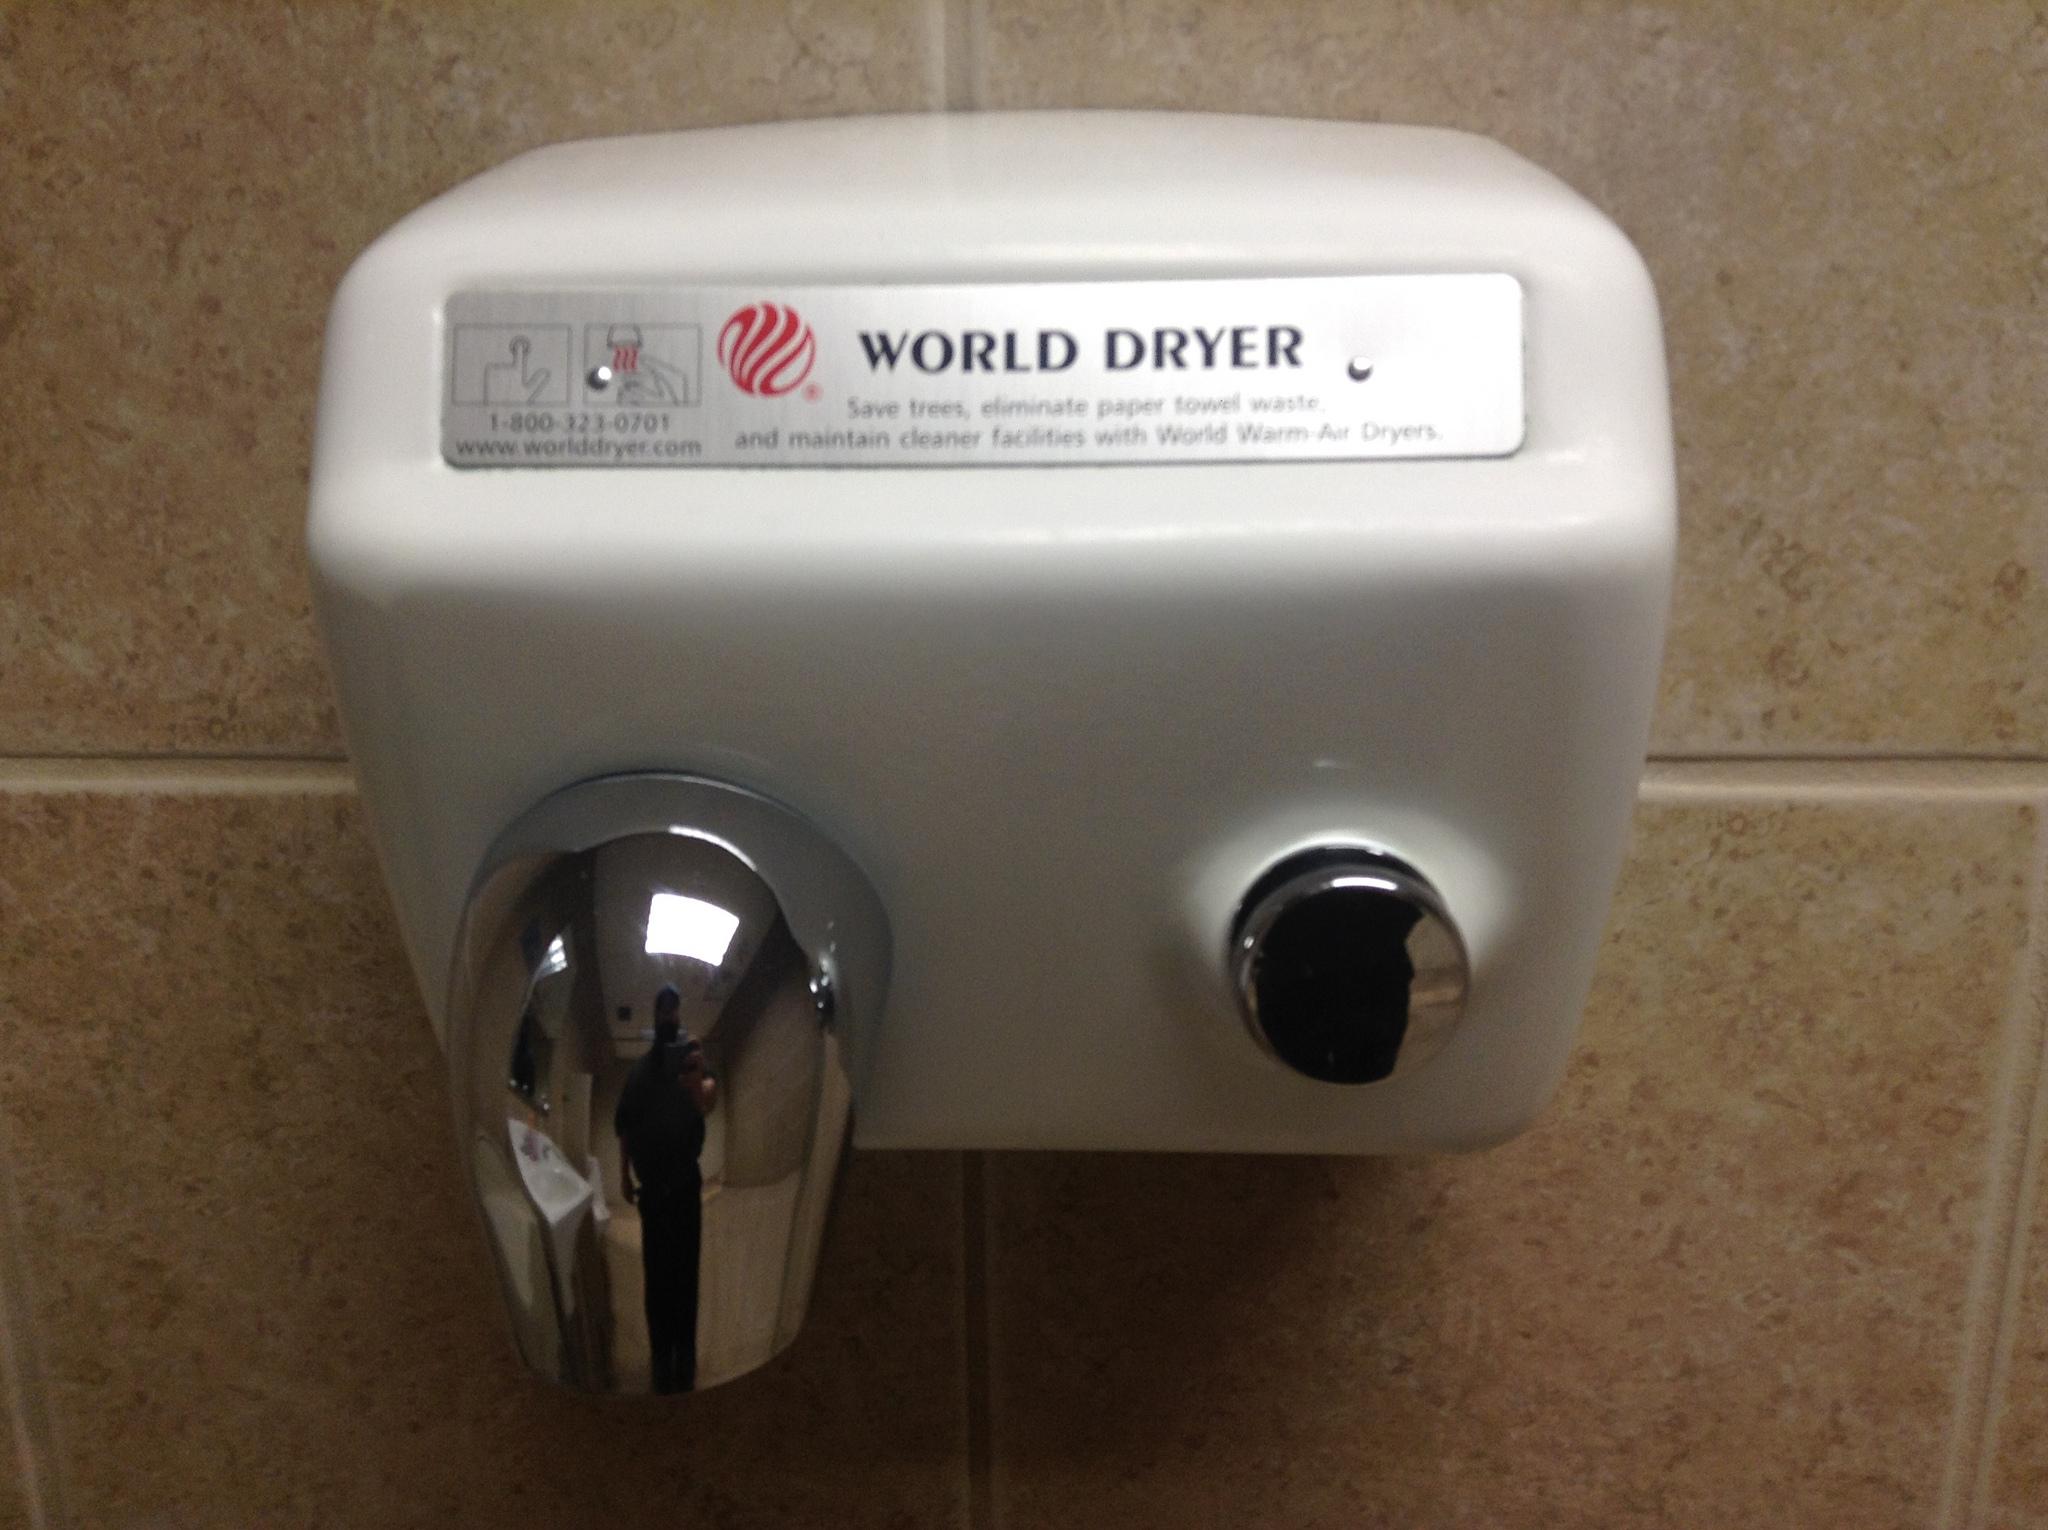 apparently drying our hands - Air Hand Dryers